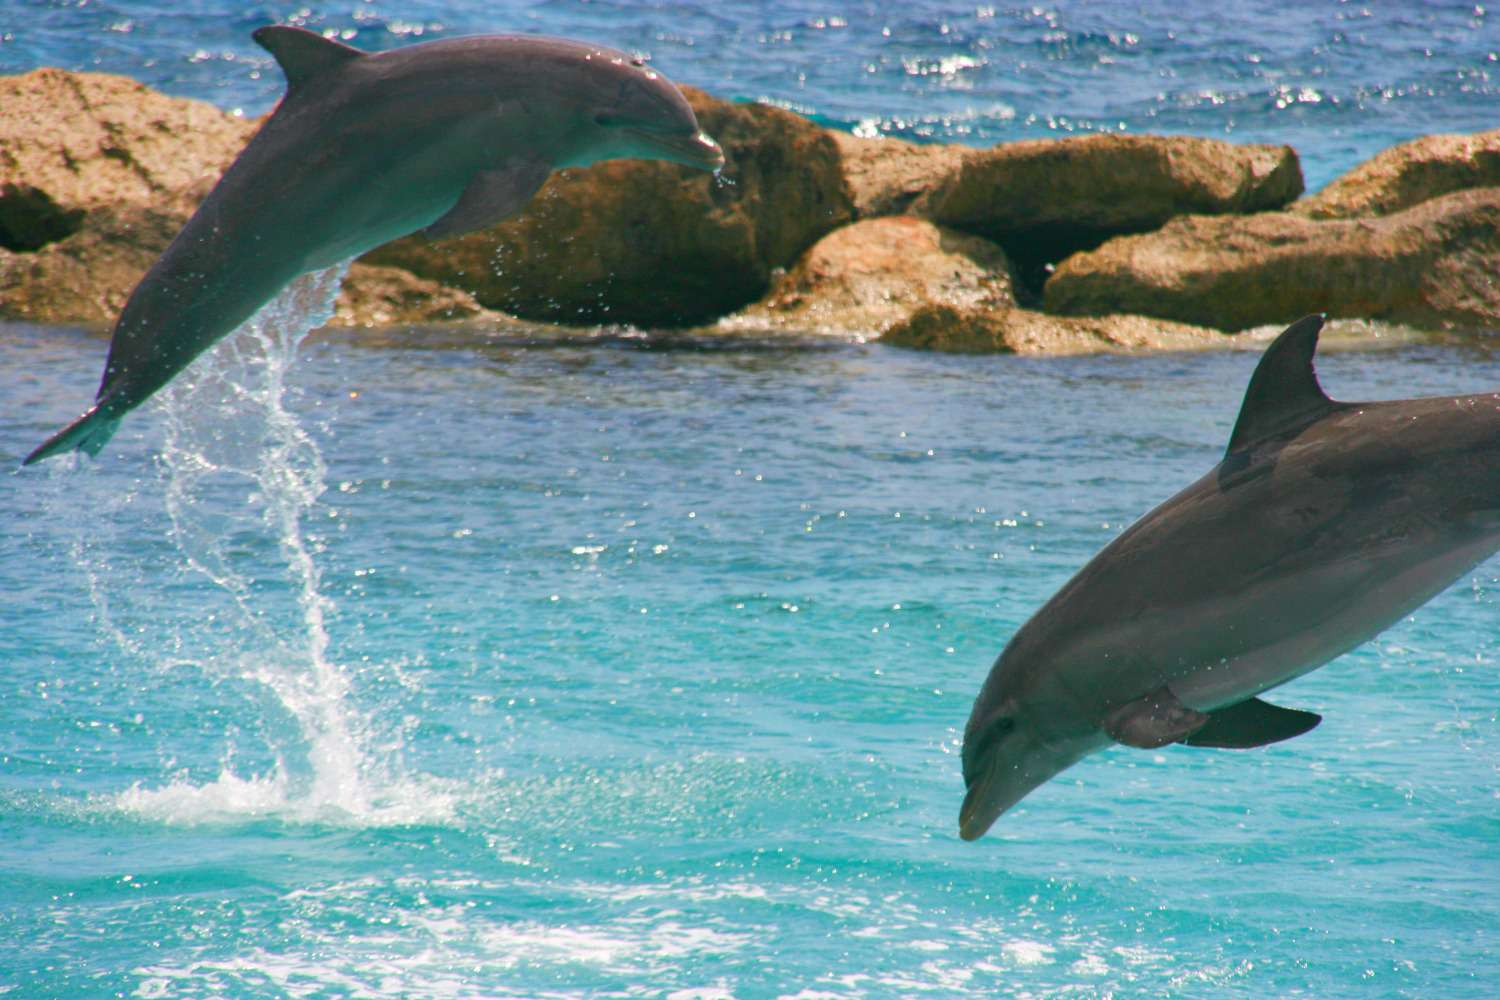 Two dolphins mid-air jumping out of or into clear blue water in Curaçao with a rock jetty in the background.